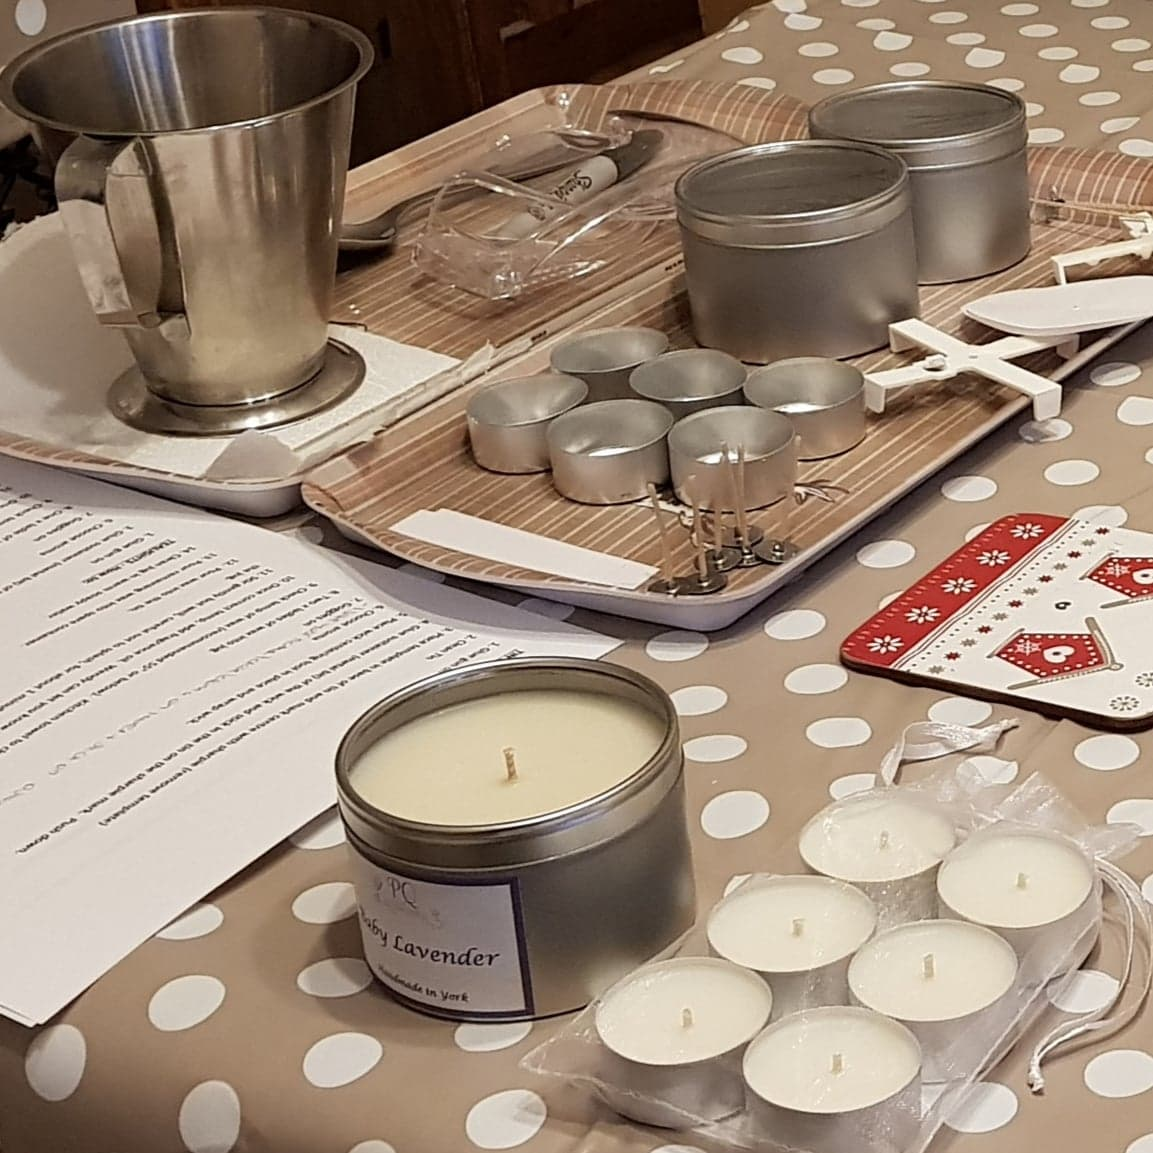 Beginners Candle Making Workshop in York city centre